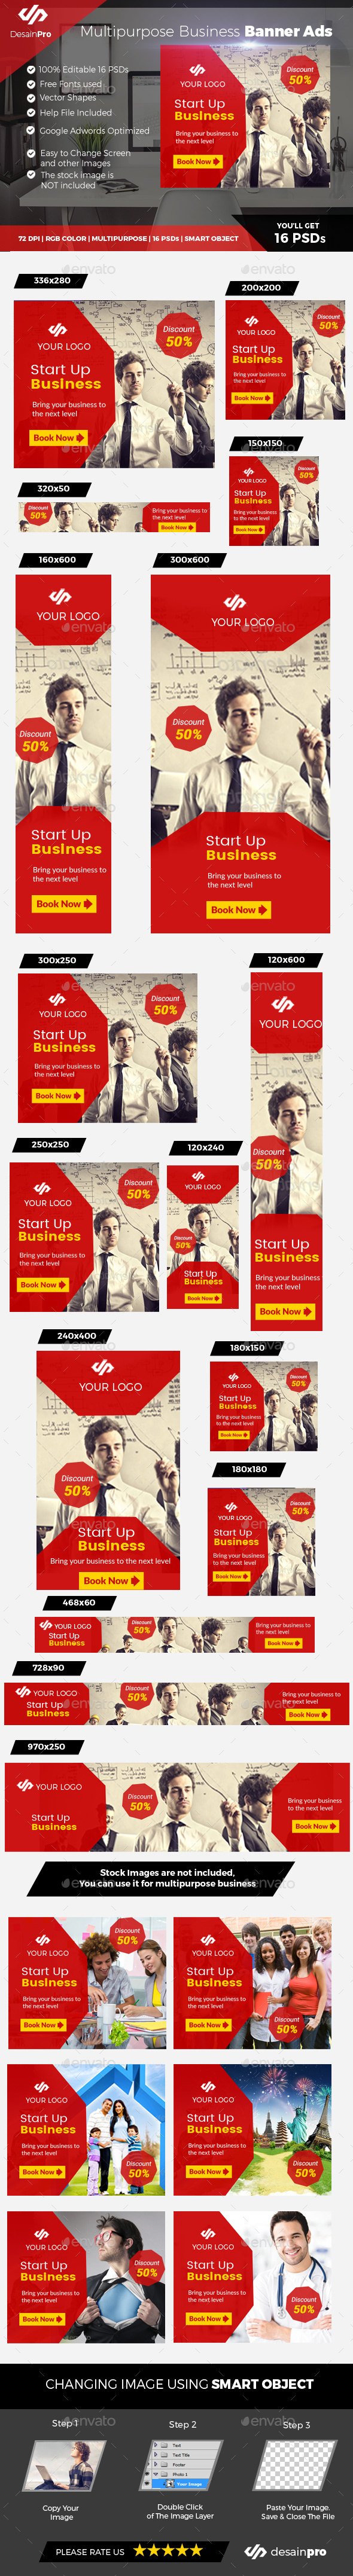 Business Red Banner - Banners & Ads Web Elements